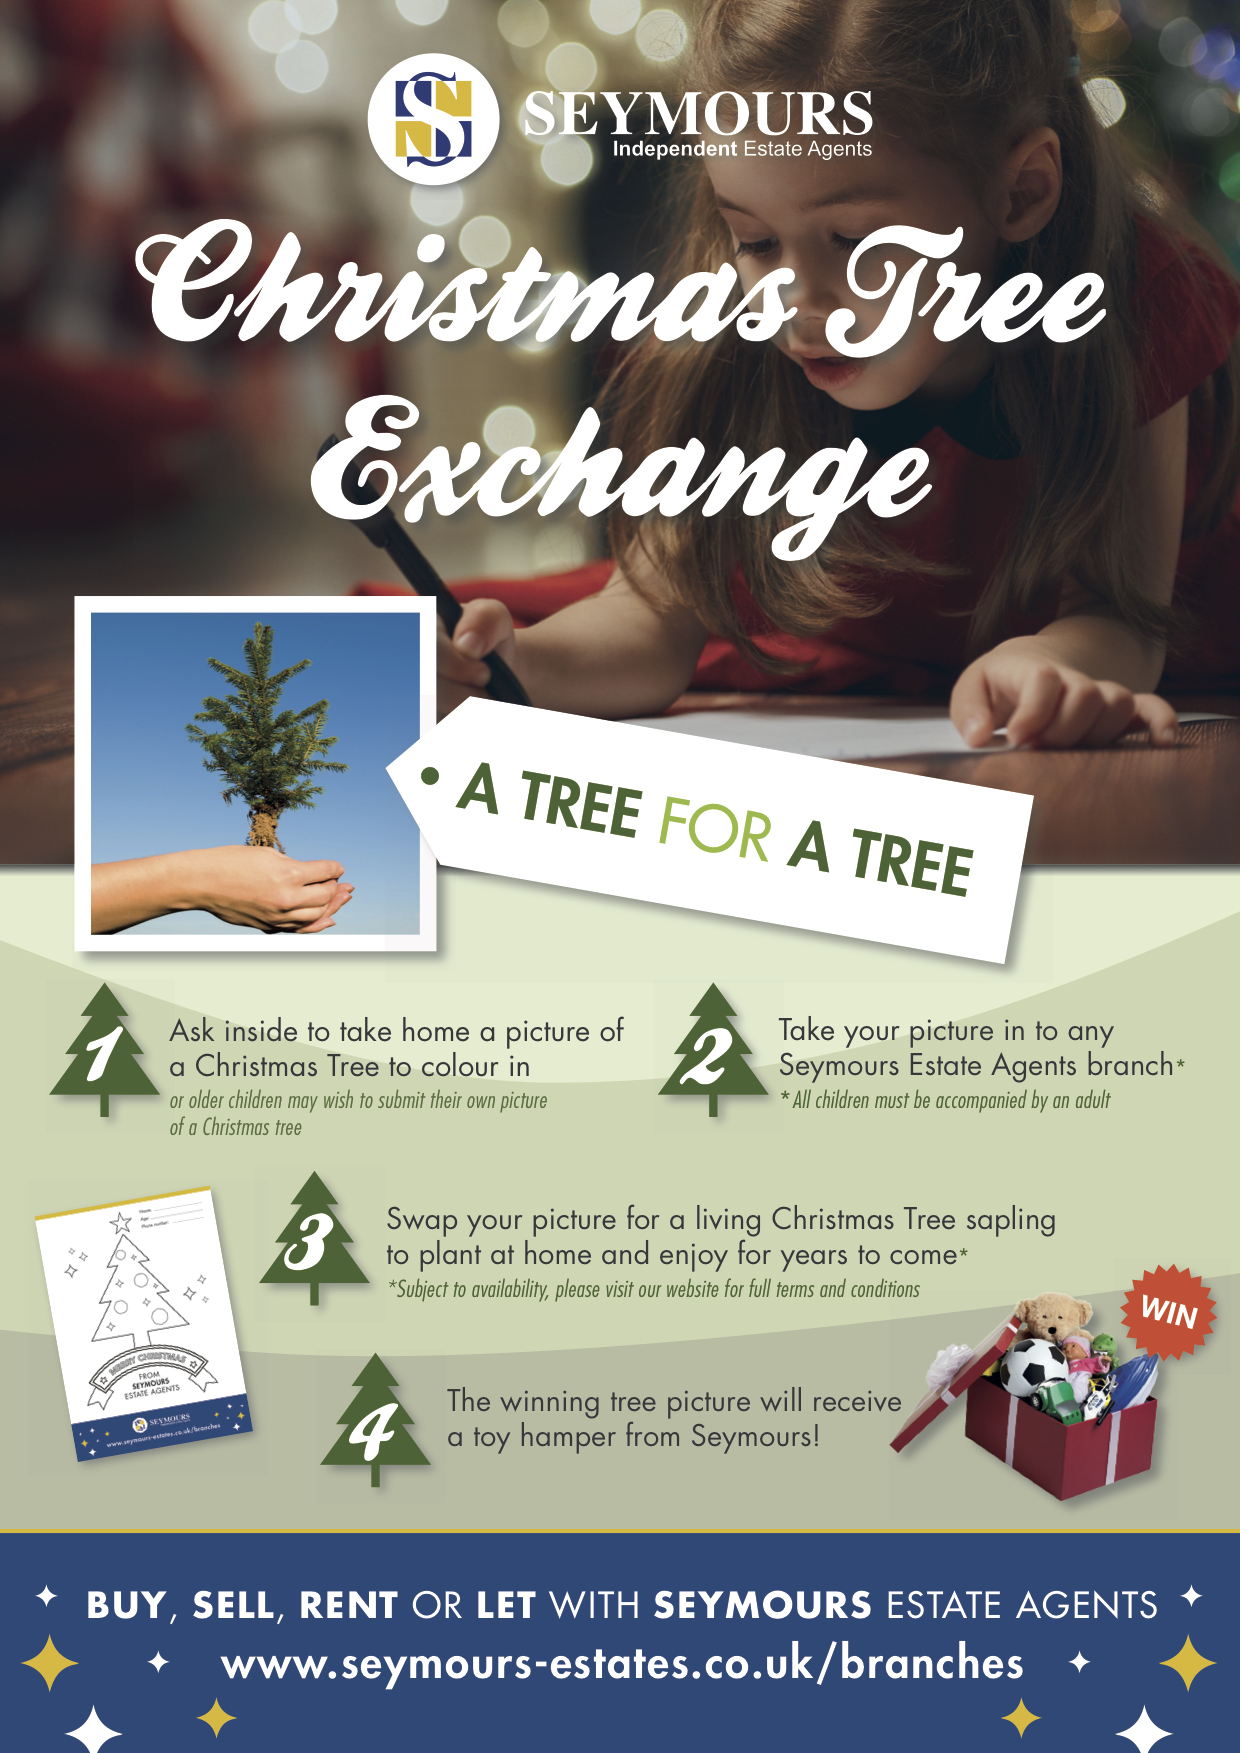 Christmas Tree Exchange